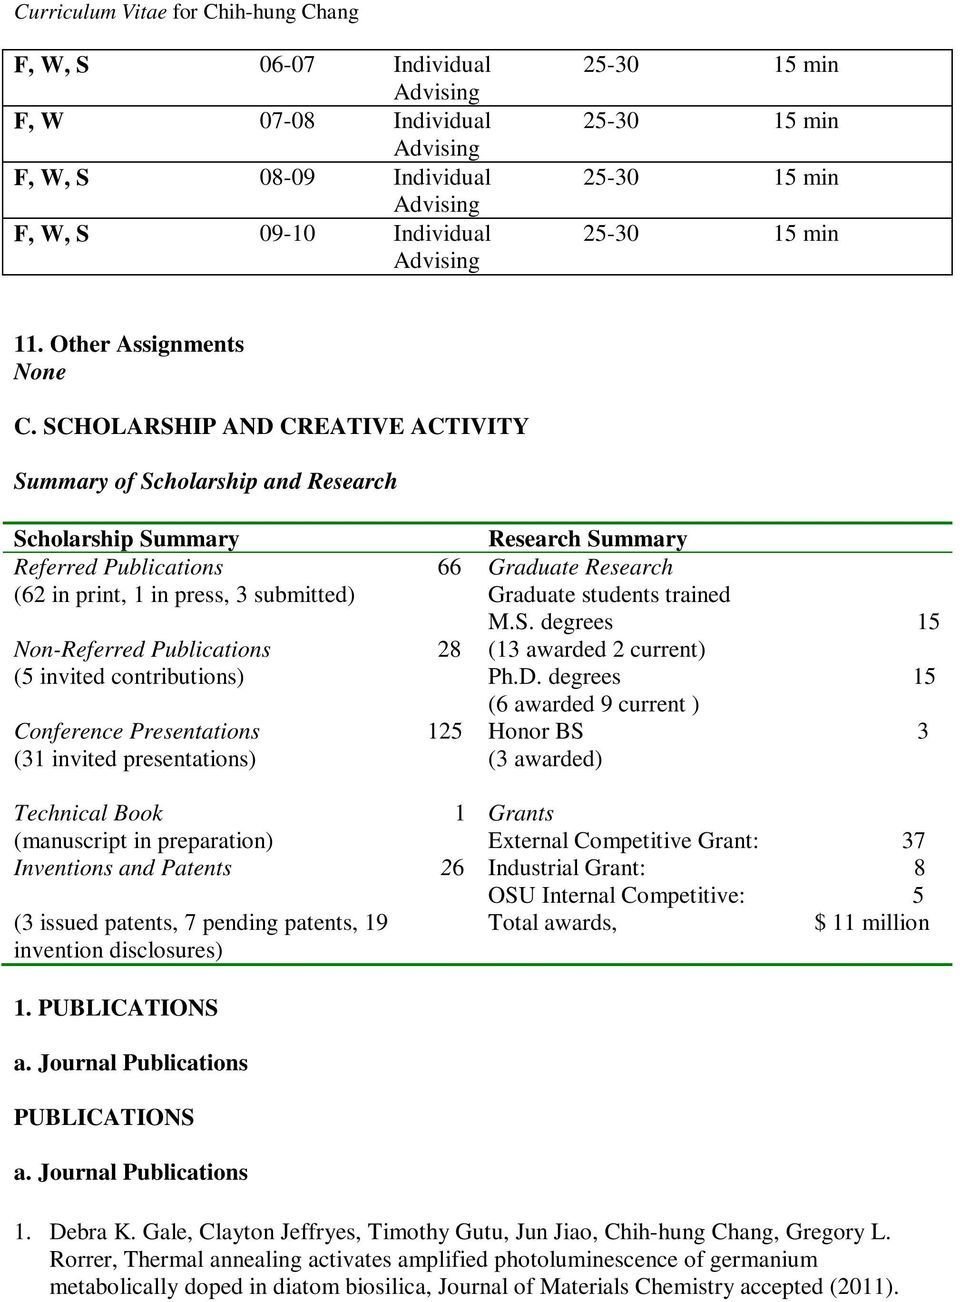 SCHOLARSHIP AND CREATIVE ACTIVITY Summary of Scholarship and Research Scholarship Summary Research Summary Referred Publications 66 Graduate Research (62 in print, 1 in press, 3 submitted) Graduate